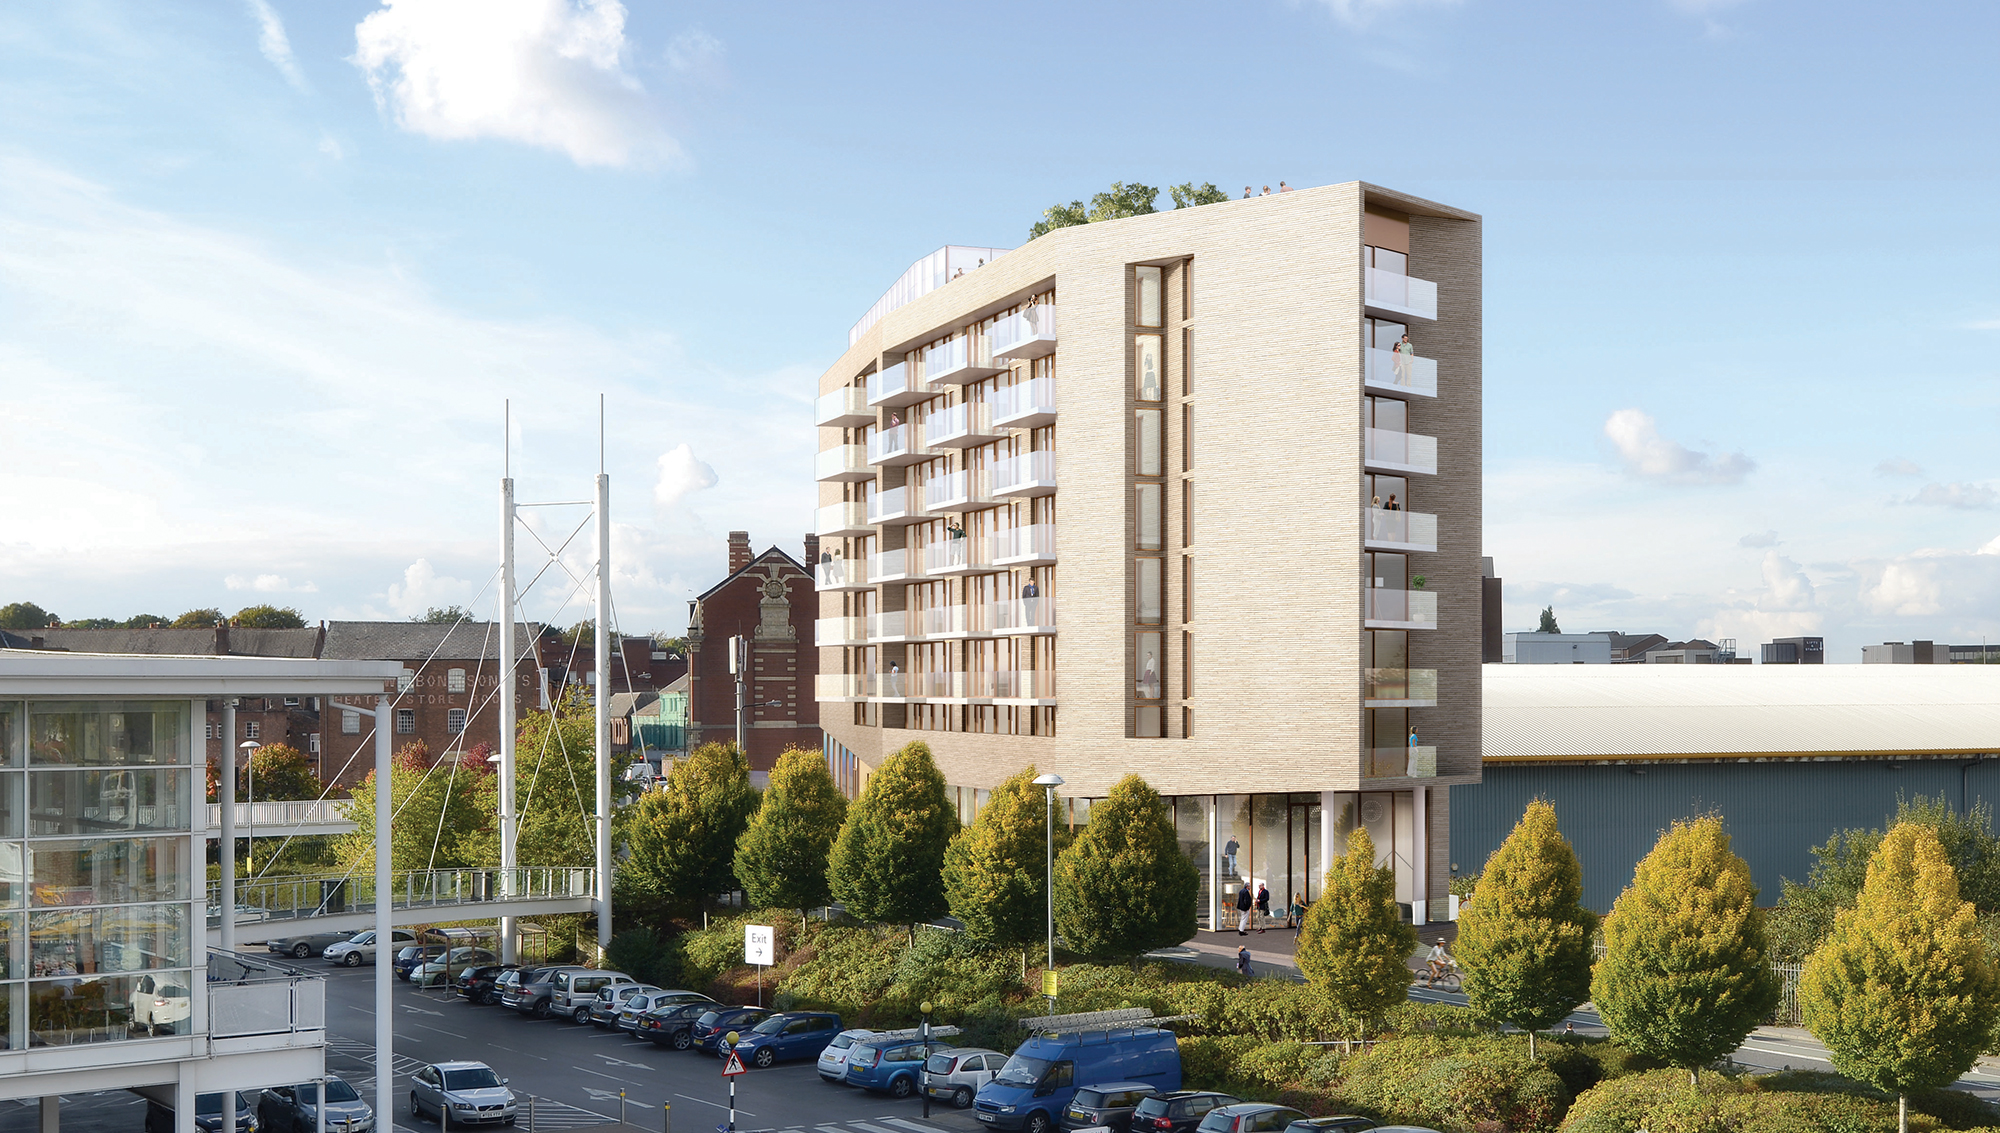 altrincham, altair, apartments, new homes in altrincham, apartments in altrincham